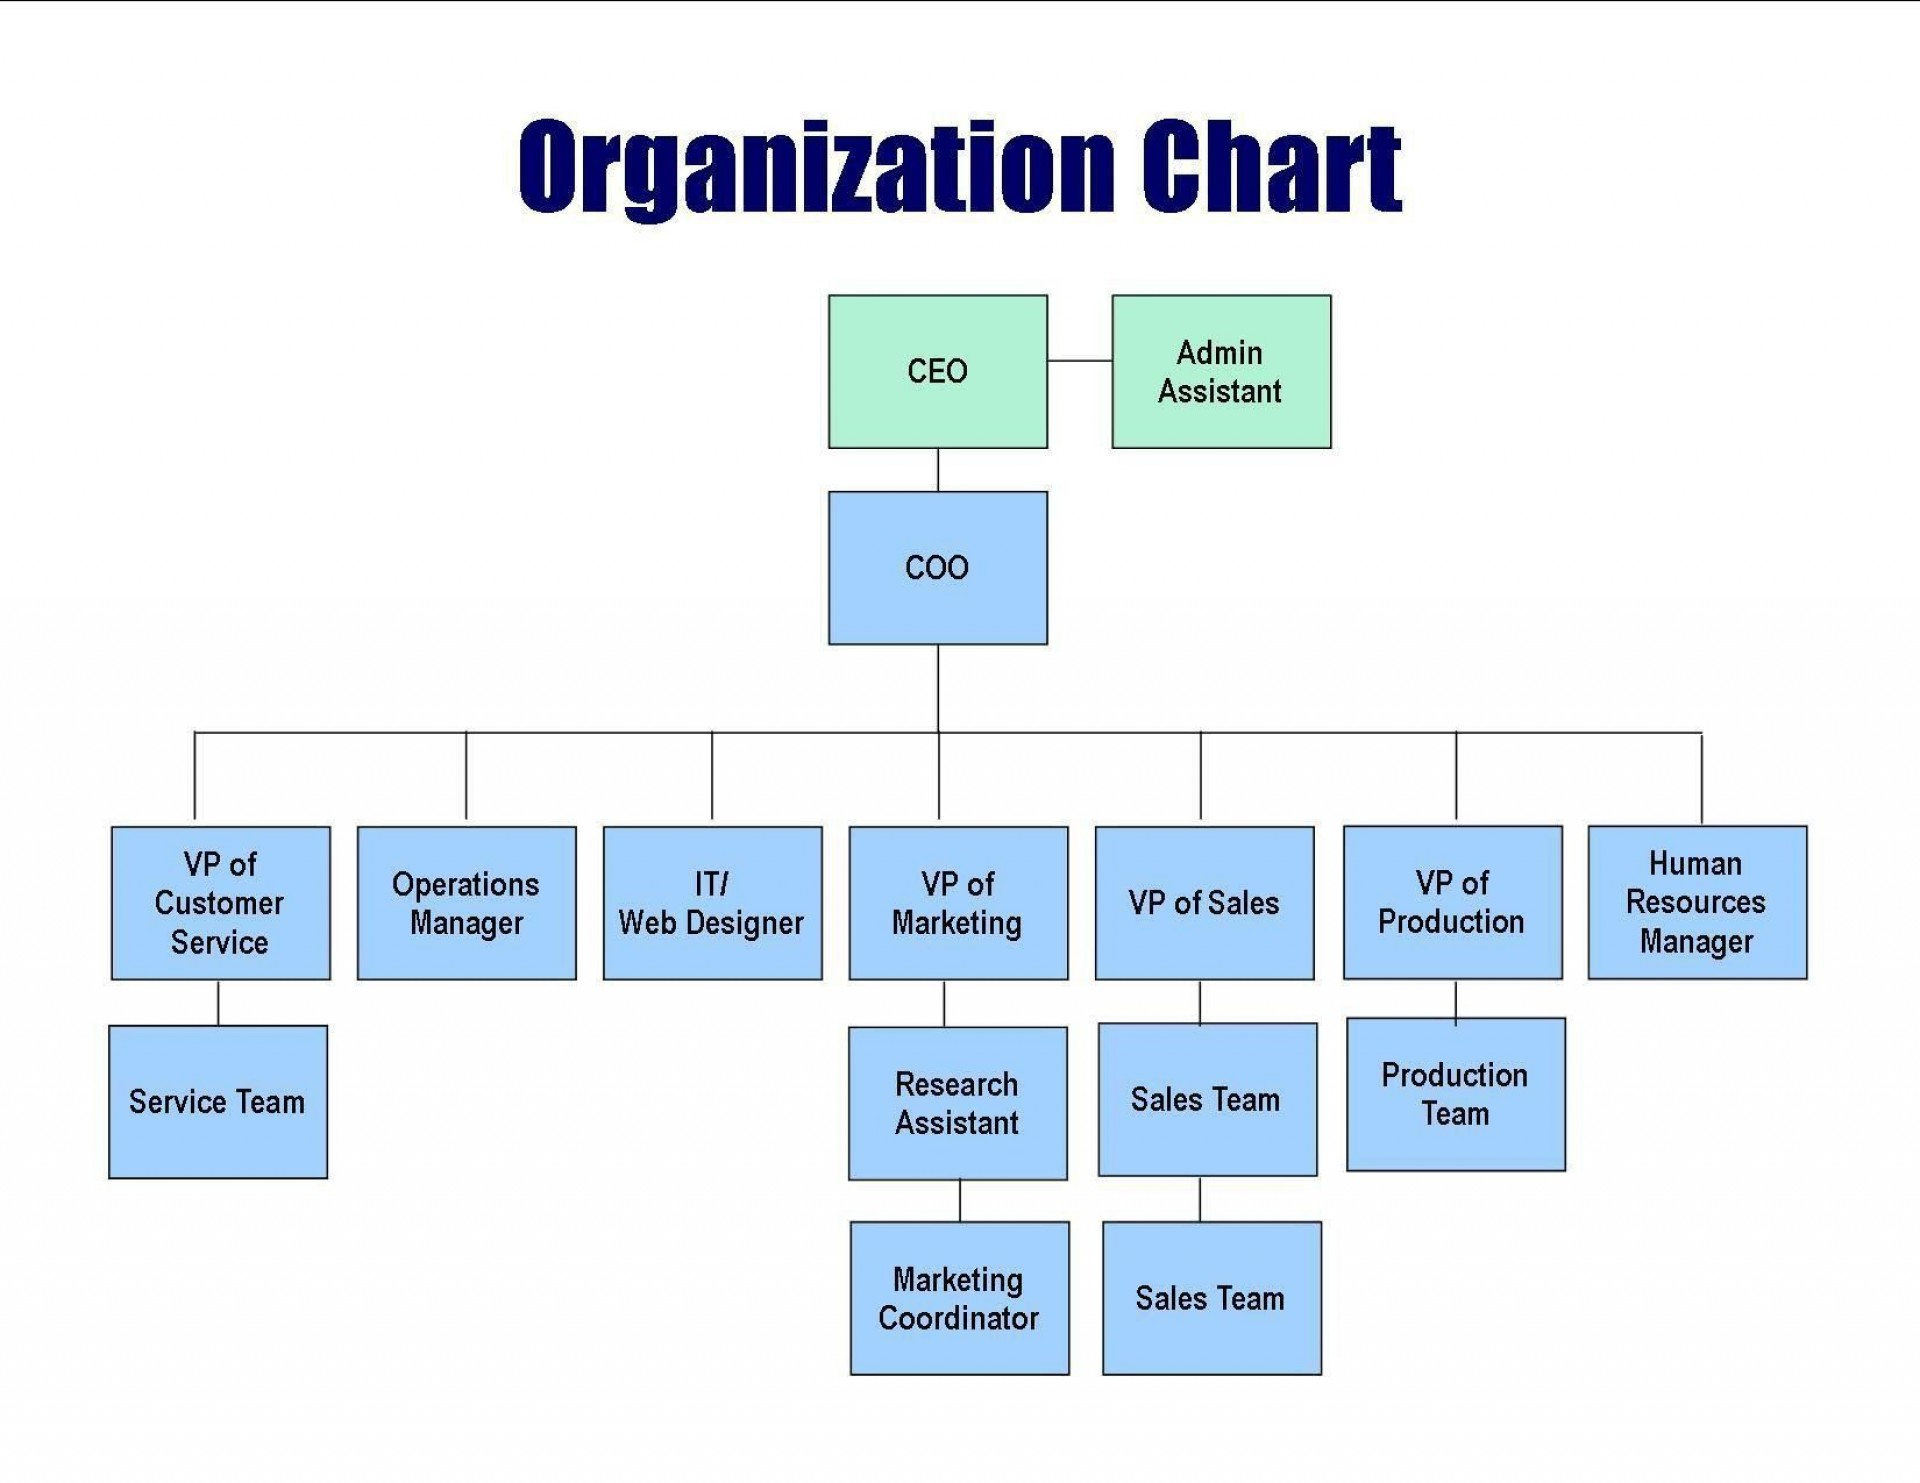 001 Breathtaking Organization Chart Template Excel Download Image  Org Organizational Format In1920